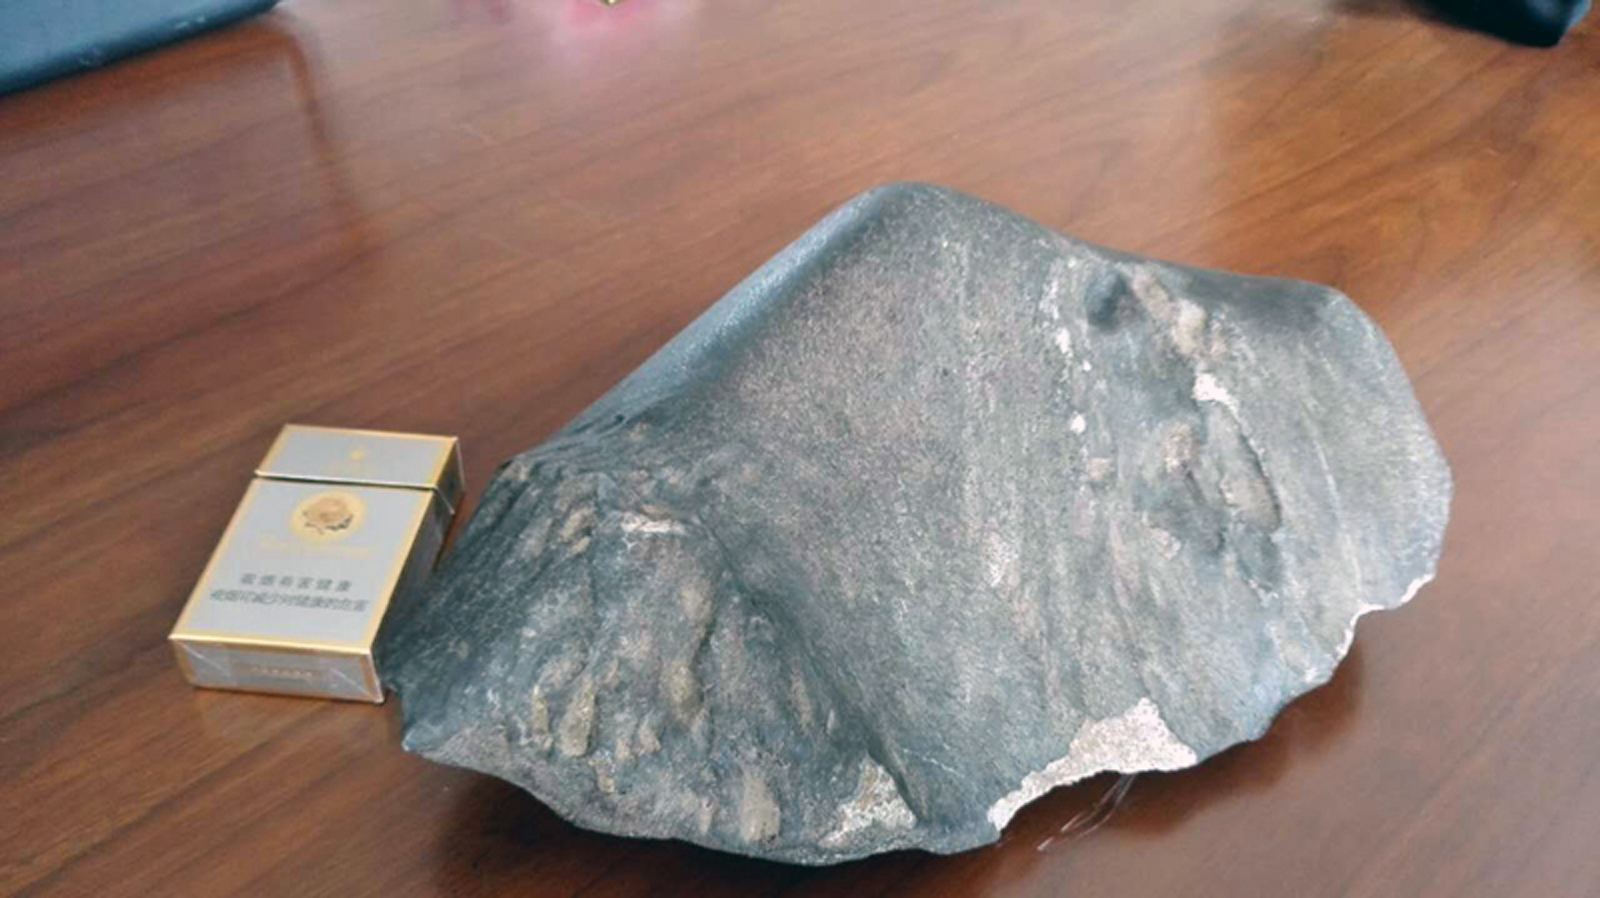 The leading side of the meteorite with its regmaglypts. / Photo: 世界陨石论坛 www.syunshi.cn